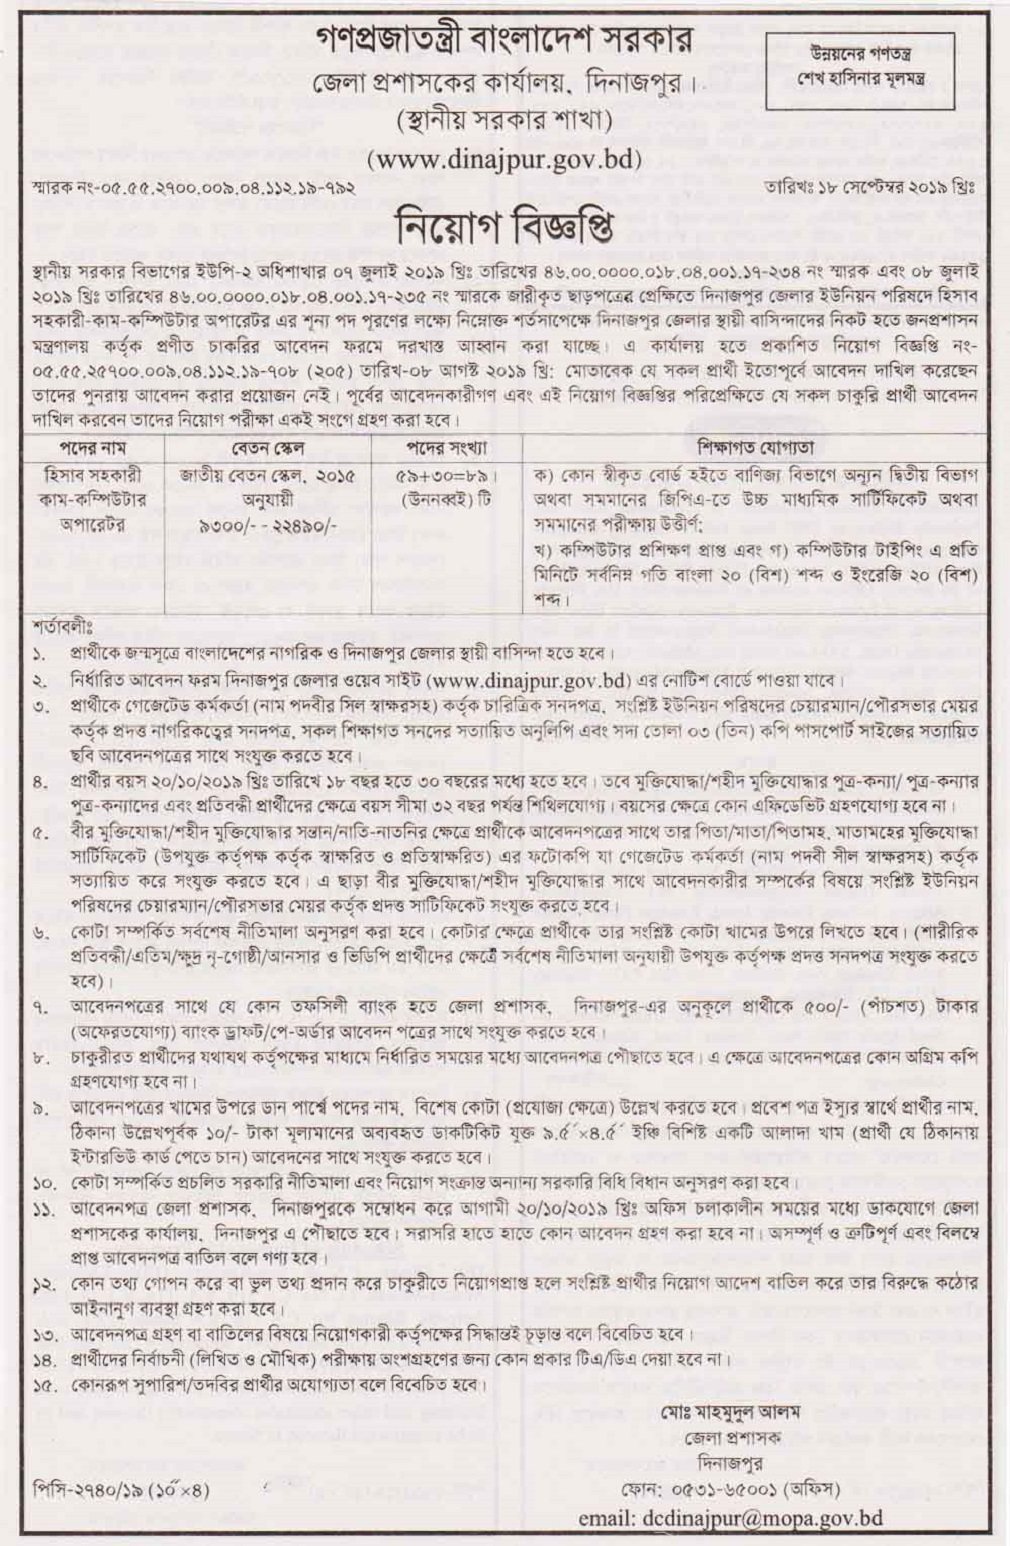 Deputy Commissioner's Office Job Circular 2019